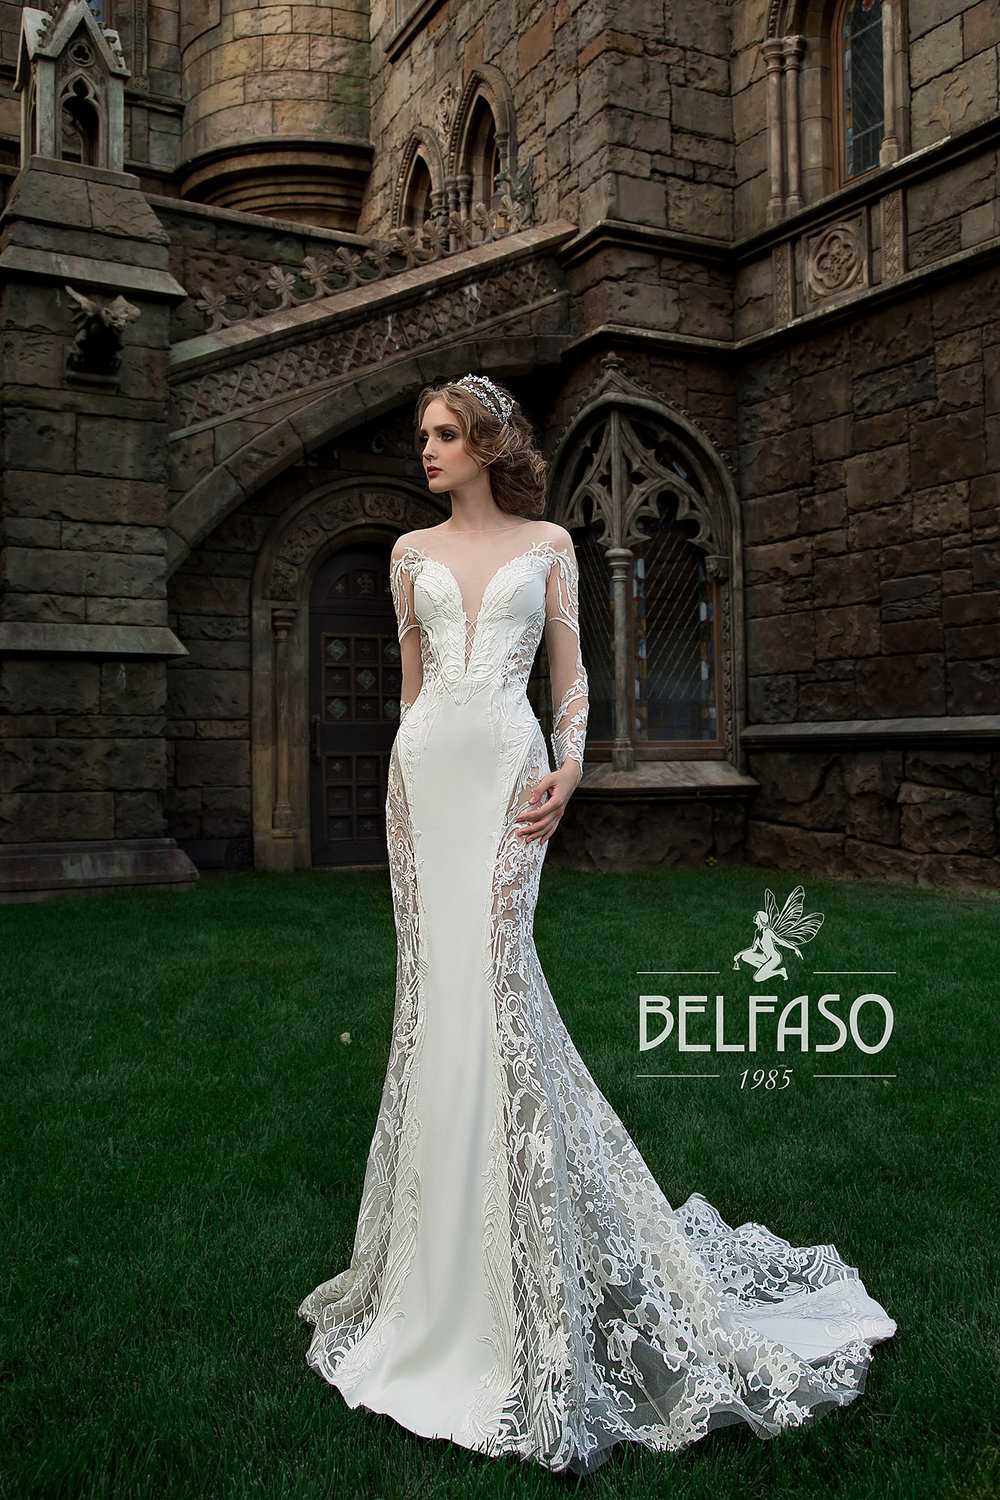 MERAYIA Dress By BELFASO